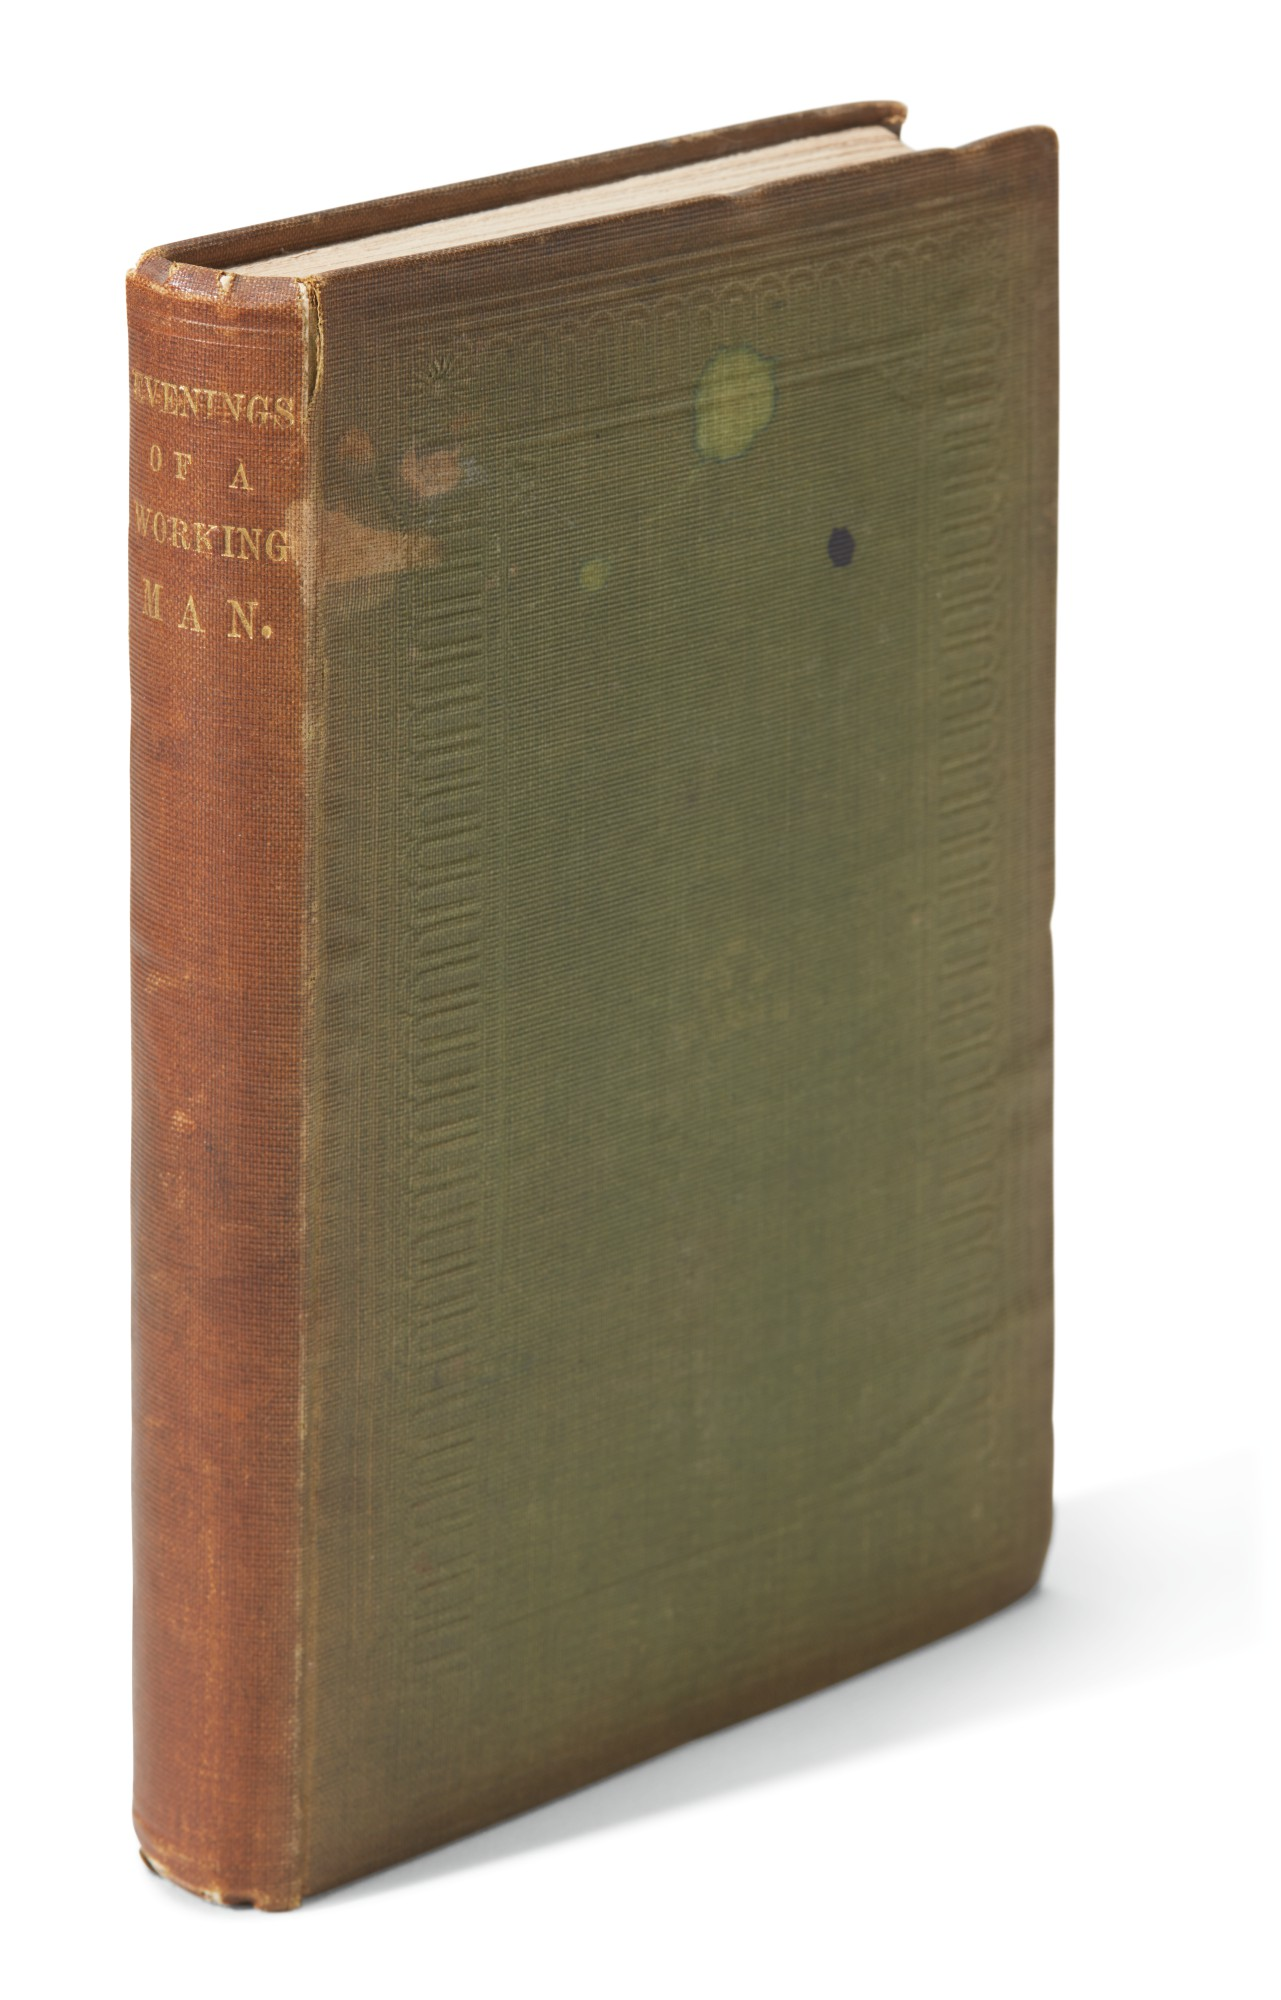 Overs--[Dickens], Evenings of a Working Man, 1844, first edition, unrecorded variant binding